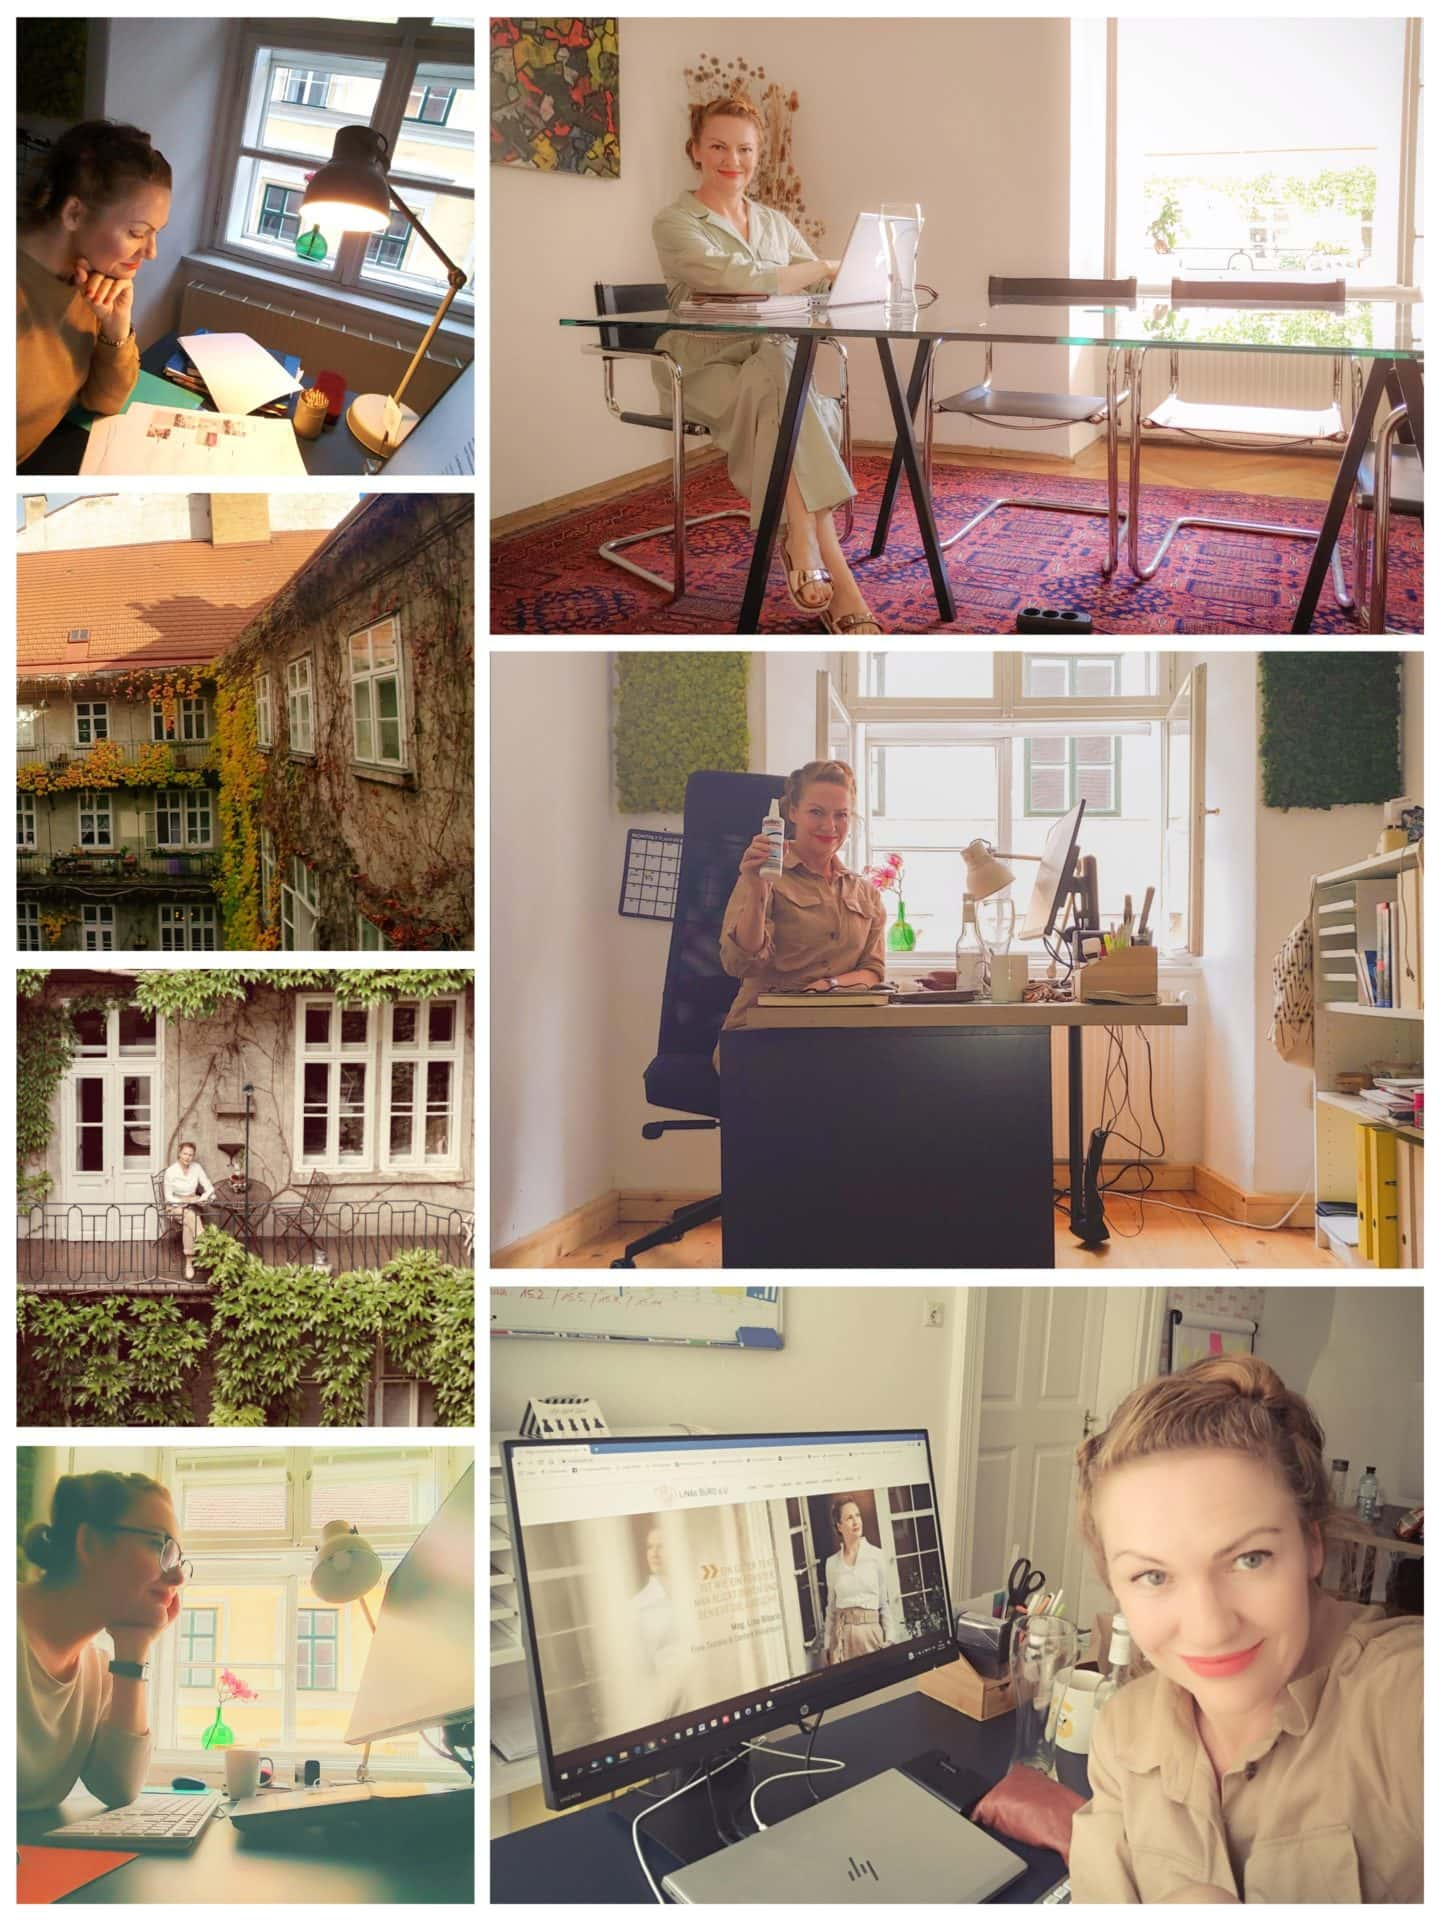 LiNAs Büro, Collage aus Fotos.